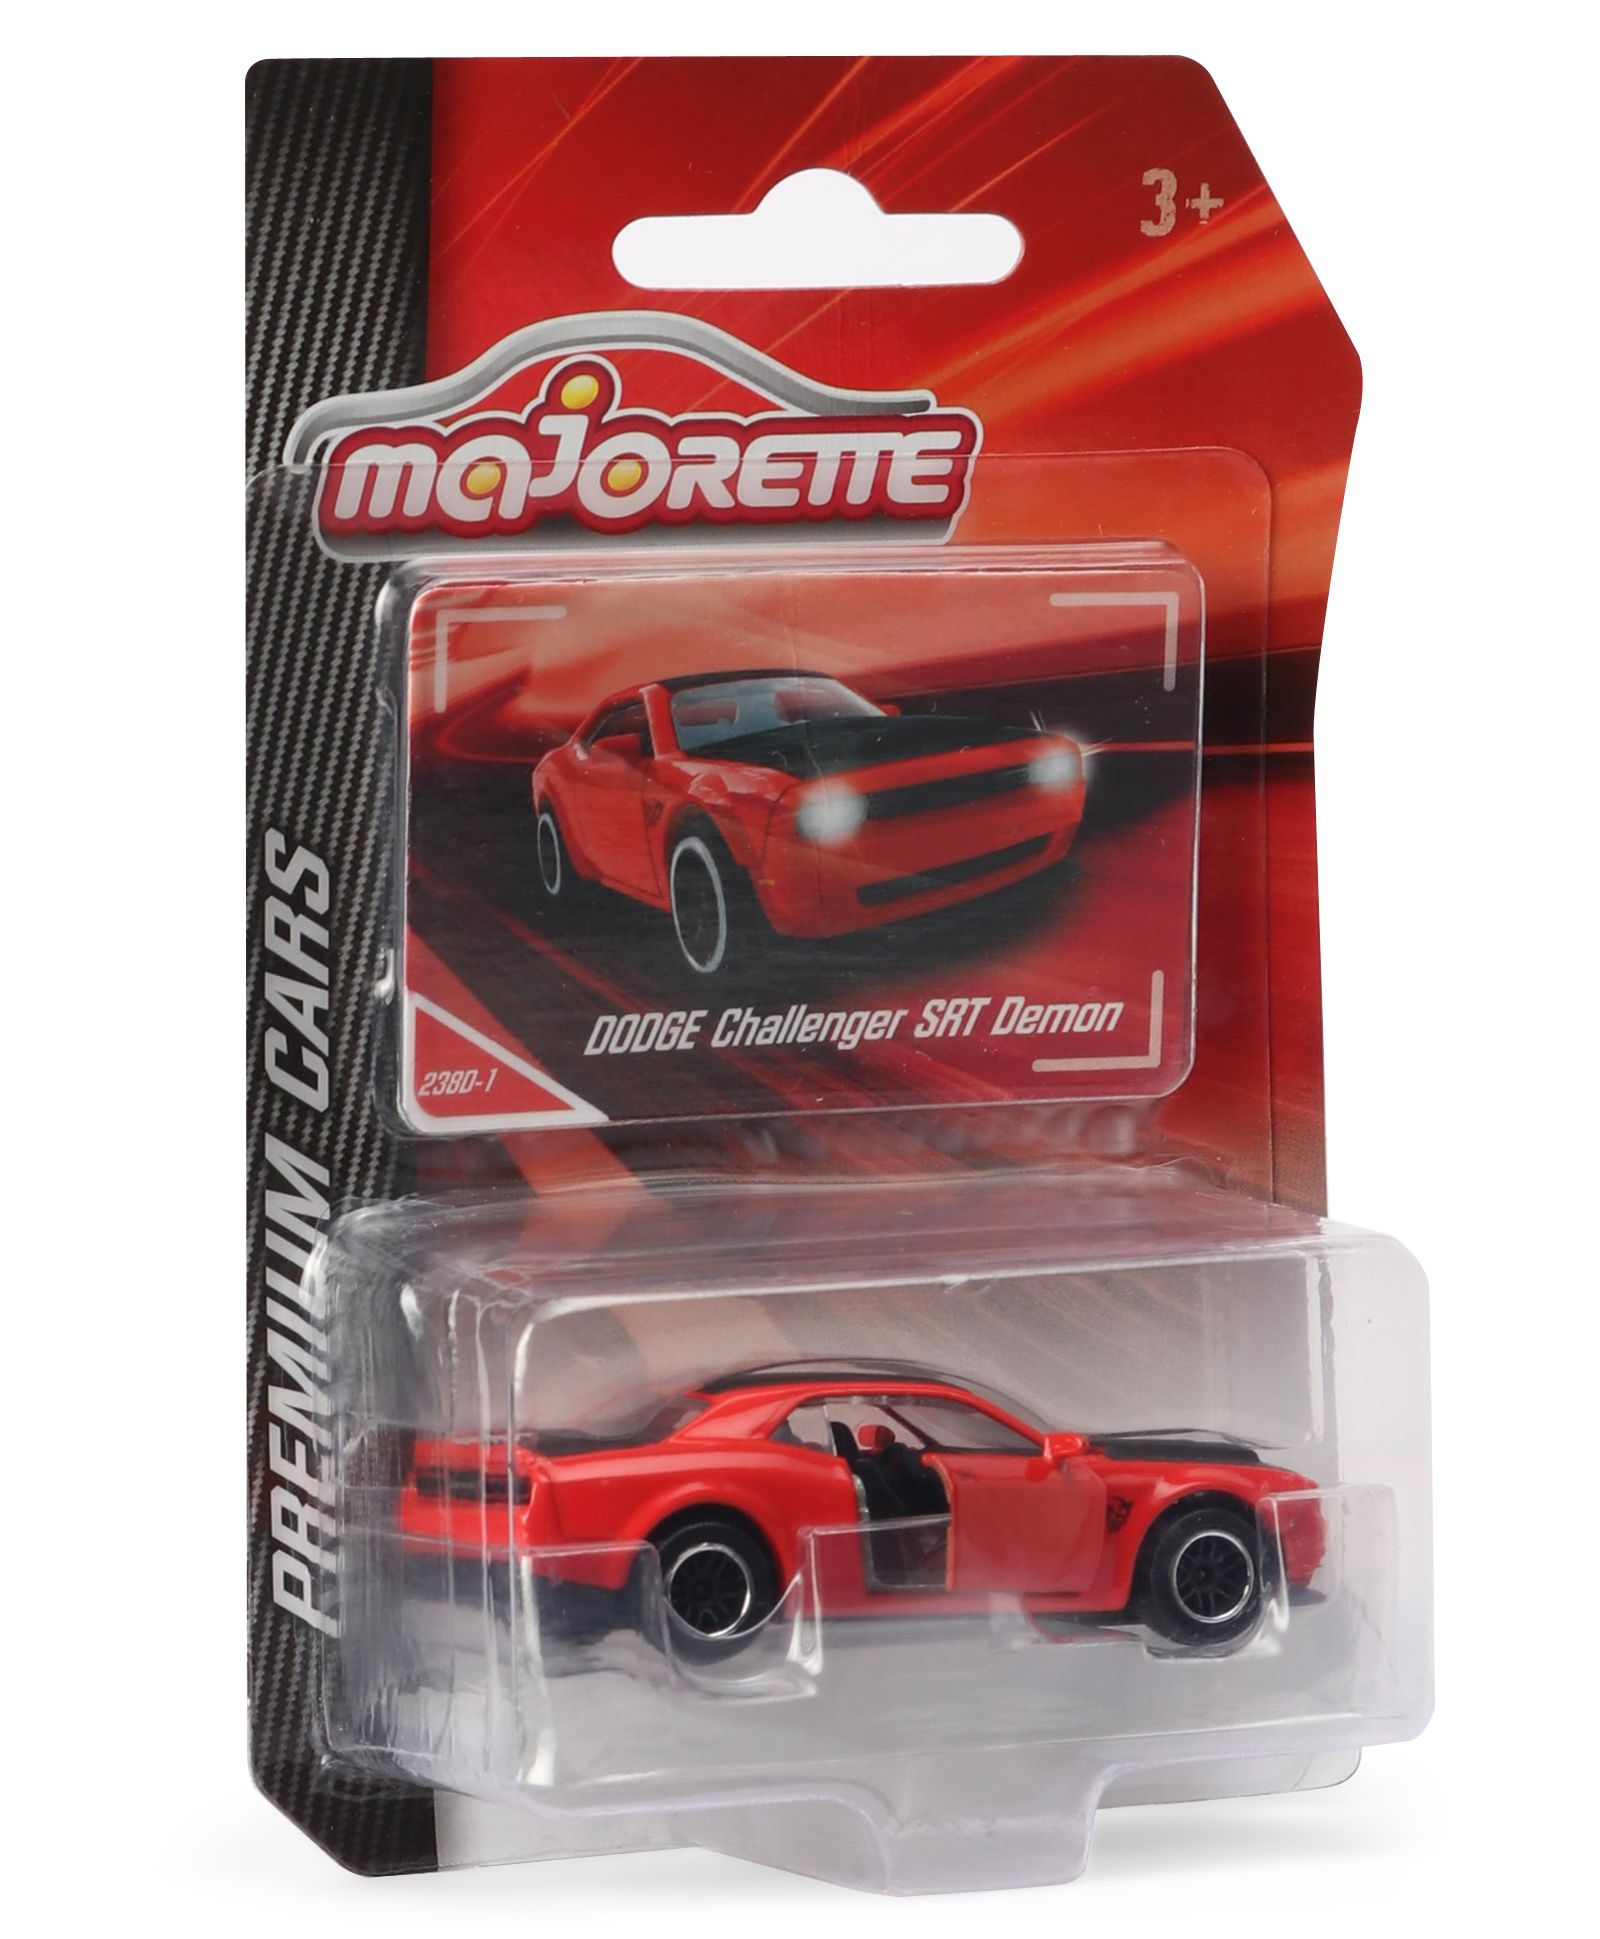 Majorette Limited Edition Die Cast Dodge Challenger Srt Demon Toy Car Red For 3 14 Years Online India Buy At Firstcry Com 2932989